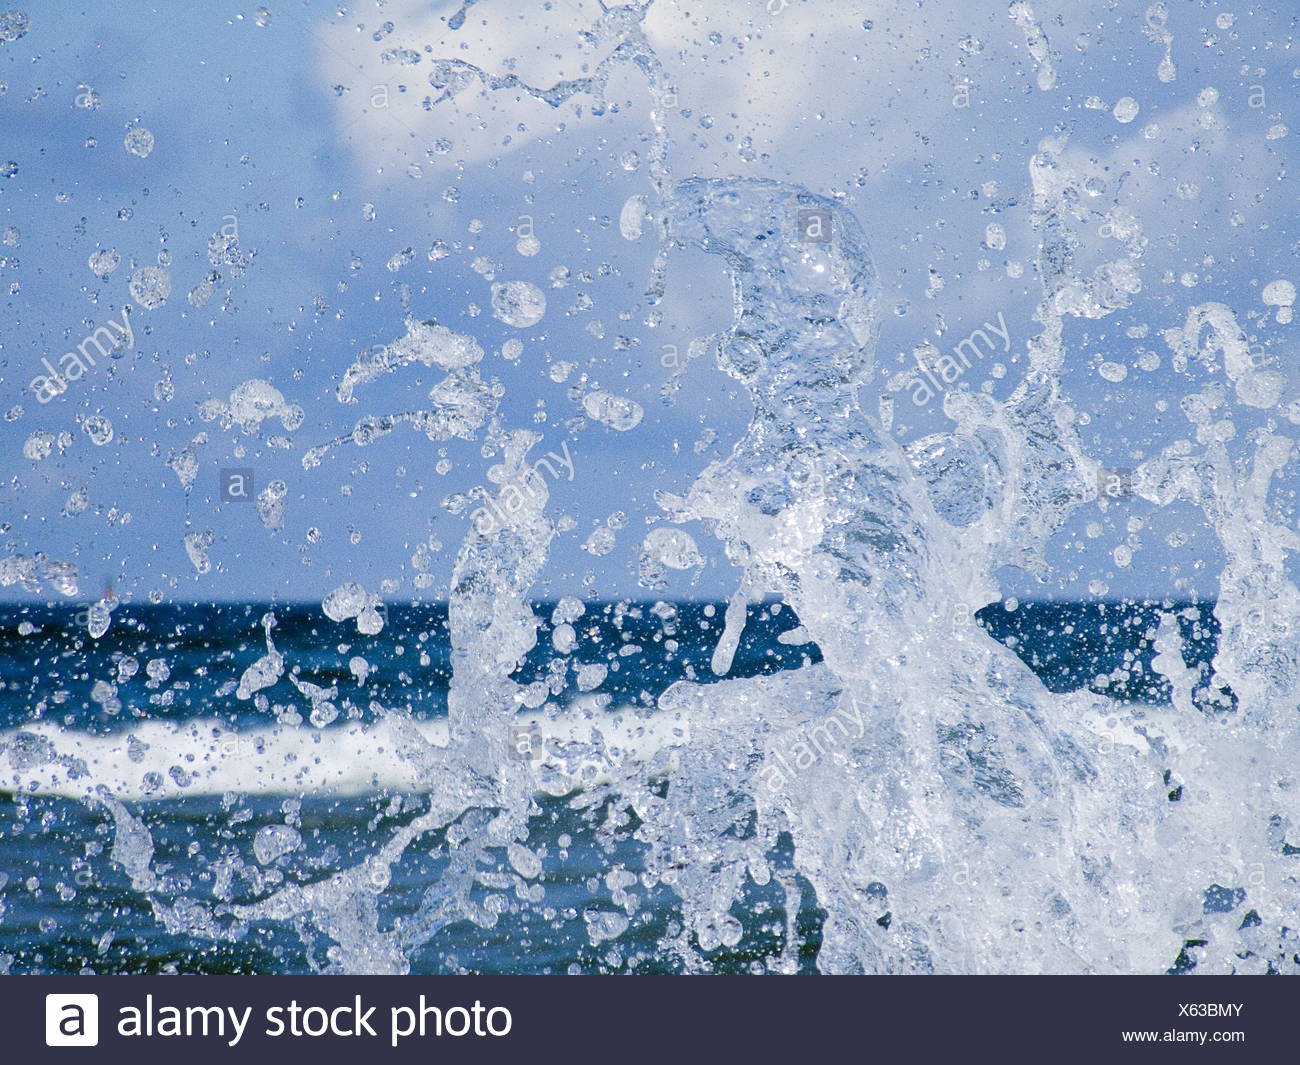 Sea, foam, close up, nature, water, waves, surf, water drop, drop, drop, drop of water, splash, nature power, spectacle of nature, colour tuning, colour, blue, light blue, - Stock Image